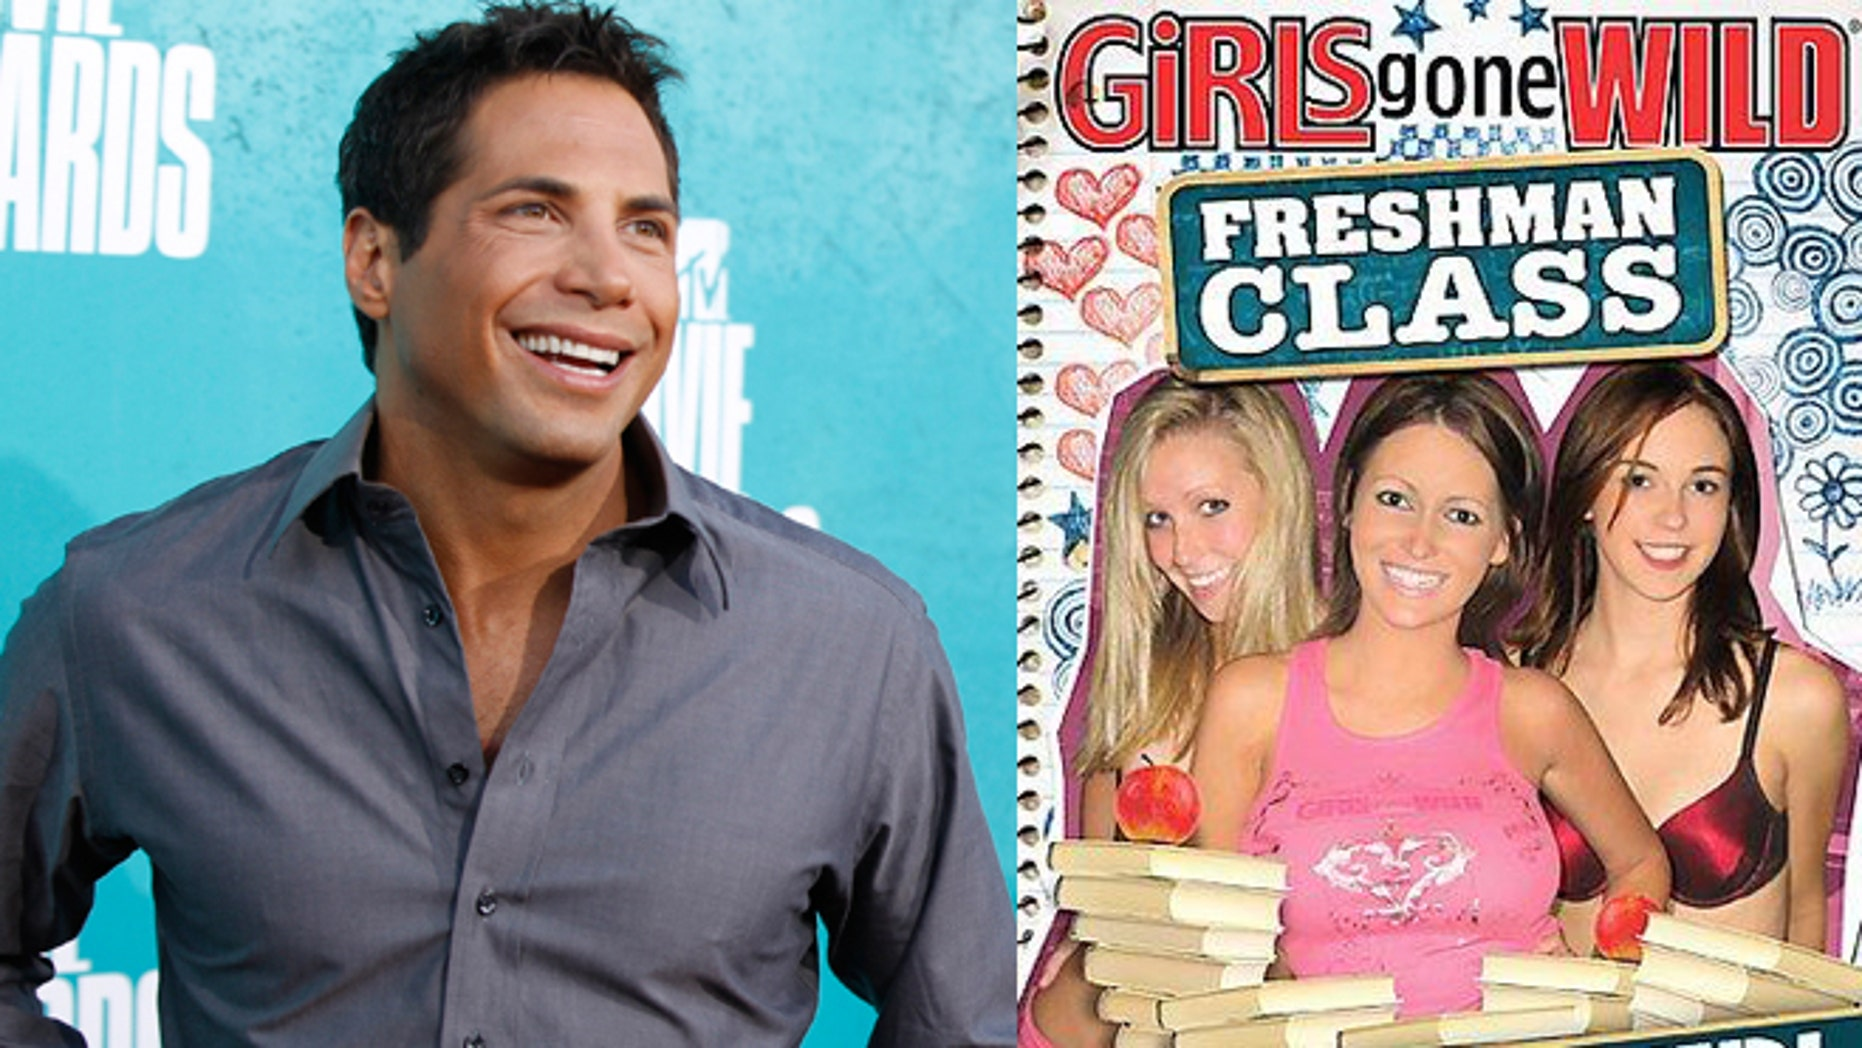 The Girls Gone Wild Franchise Founded By Joe Francis Has Filed For Bankruptcy Protection To Keep Steve Wynns Las Vegas Resort From Picking At Those